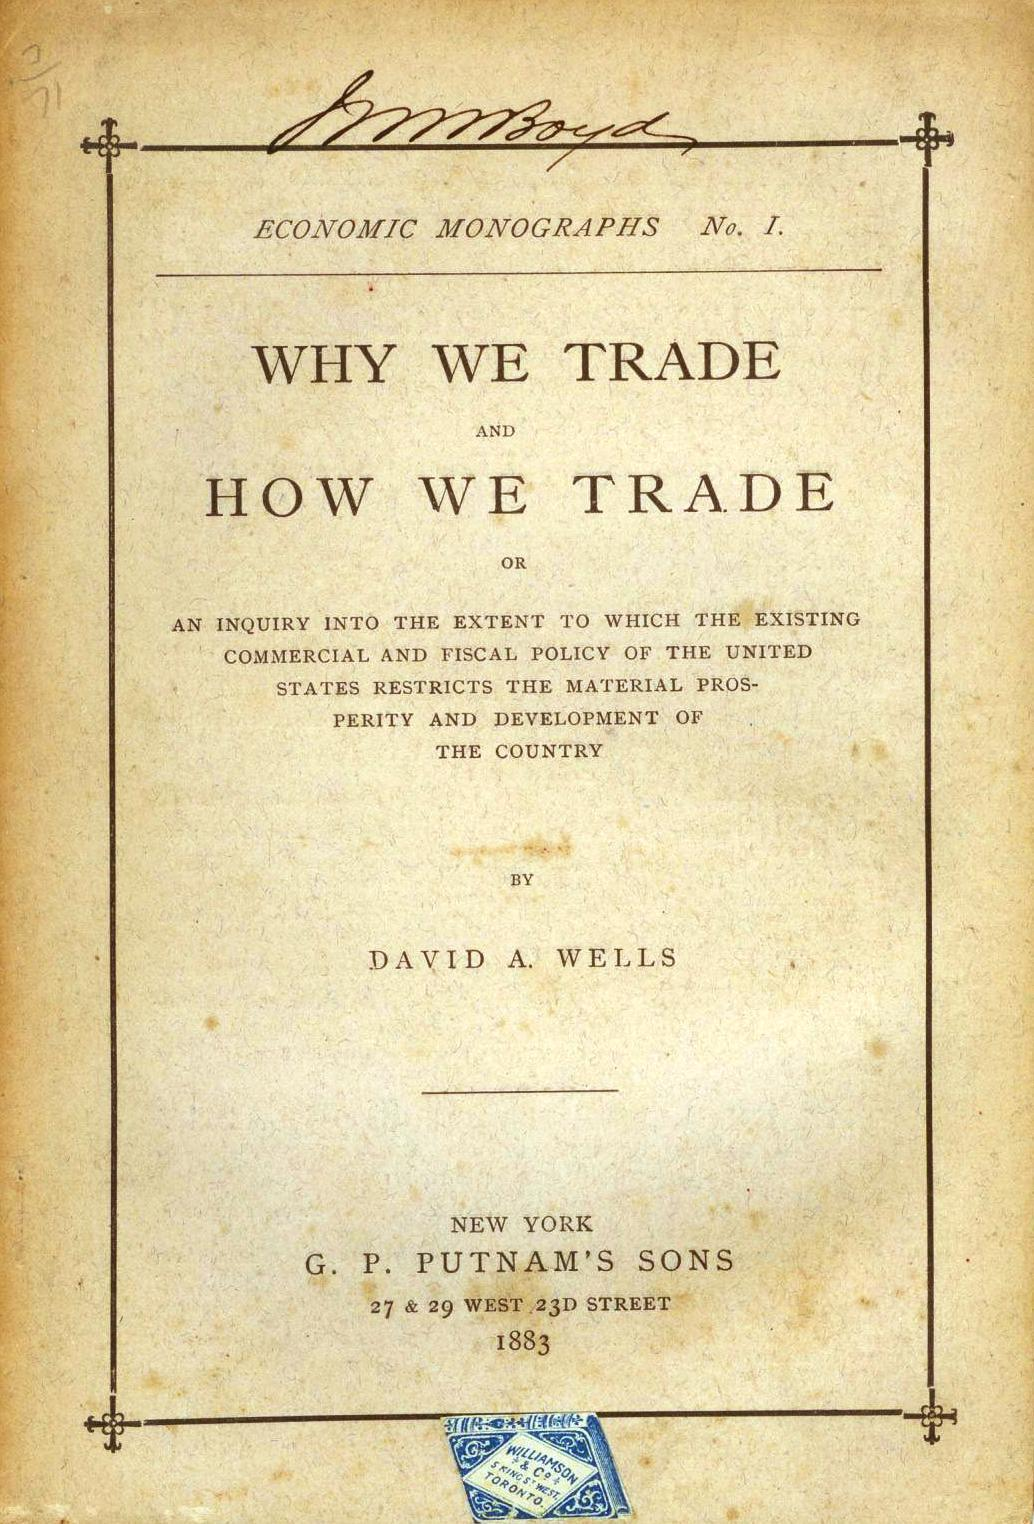 Why We Trade and How We Trade